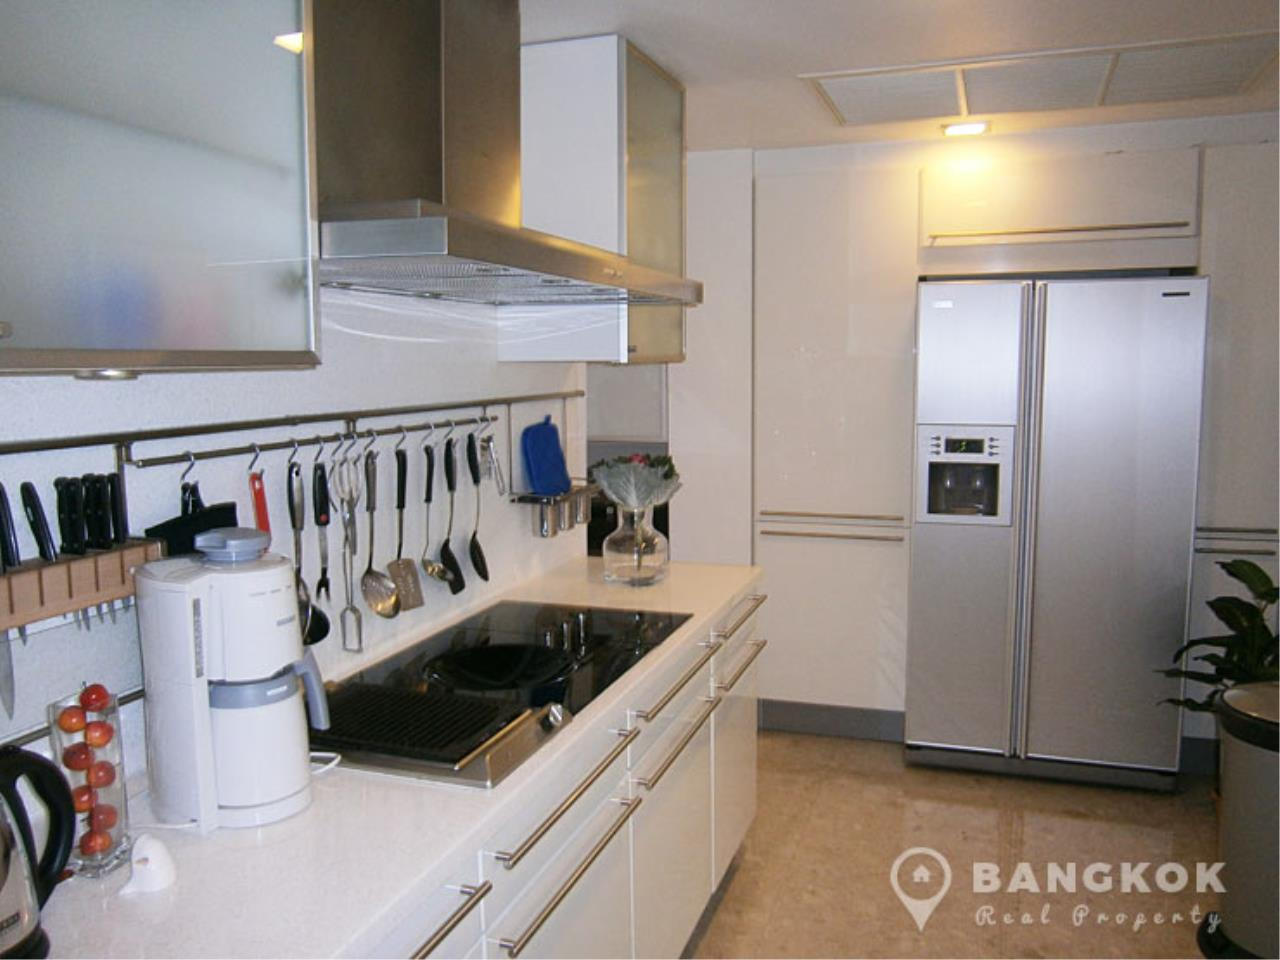 Bangkok Real Property Agency's Ficus Lane | A Fabulous Spacious 3 Bed 4 Bath Duplex near BTS 7